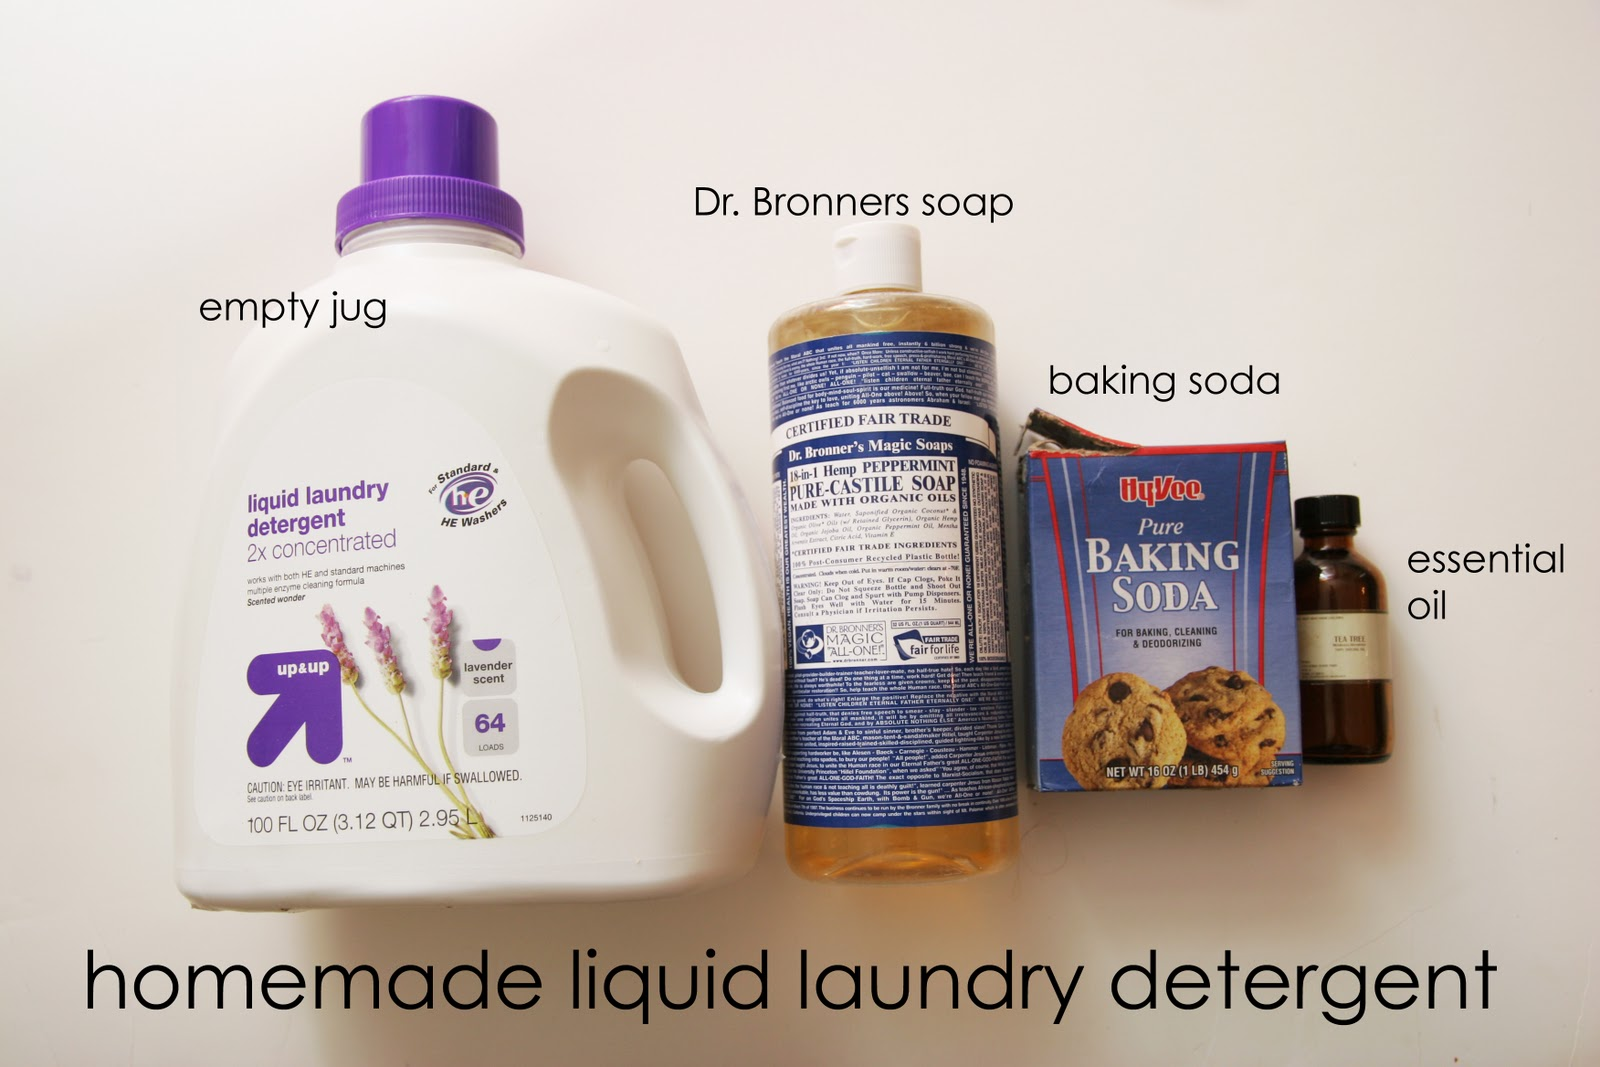 Homemade liquid laundry detergent homemade ginger make your own homemade liquid laundry detergent with just a few simple and natural ingredients solutioingenieria Image collections